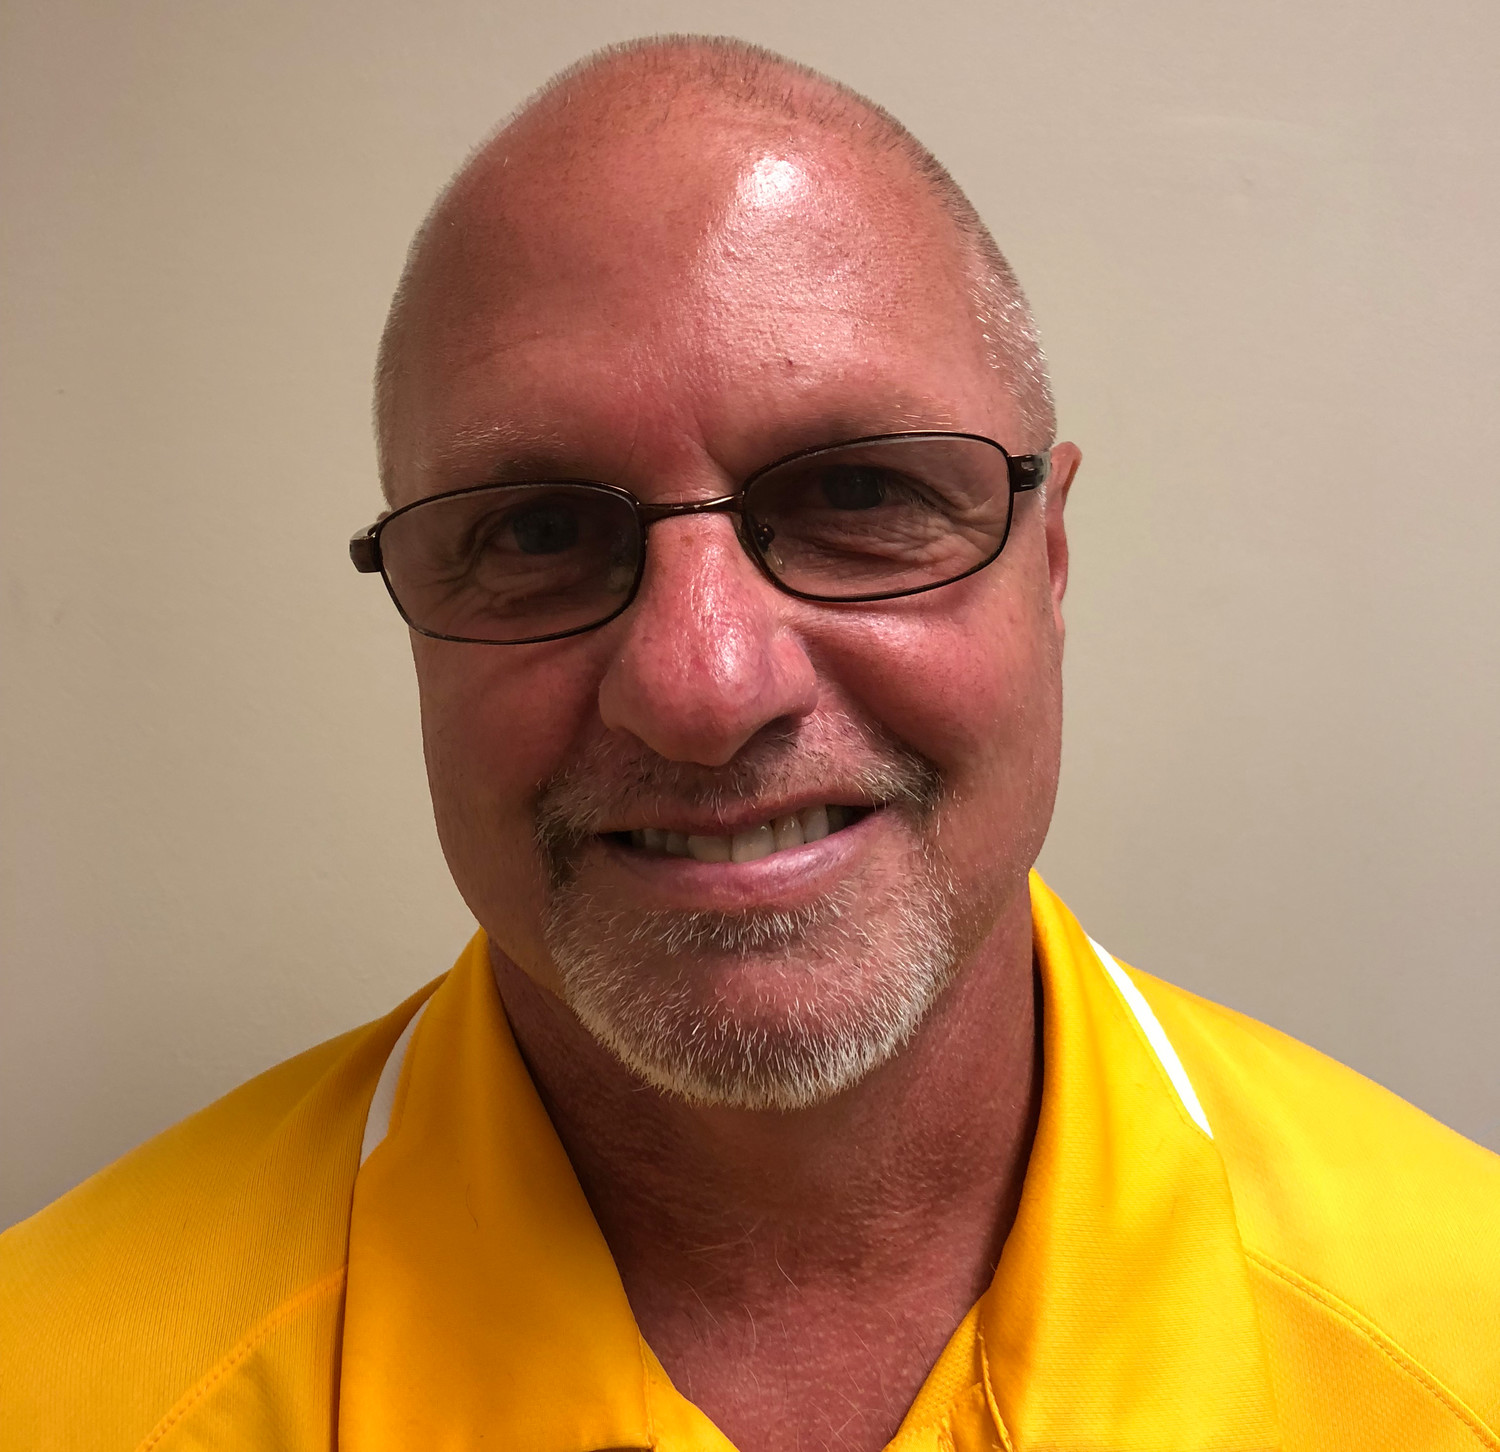 Robert Pelletier is a 1983 Middletown Area High School graduate and is taking over the girls basketball team for his alma mater.